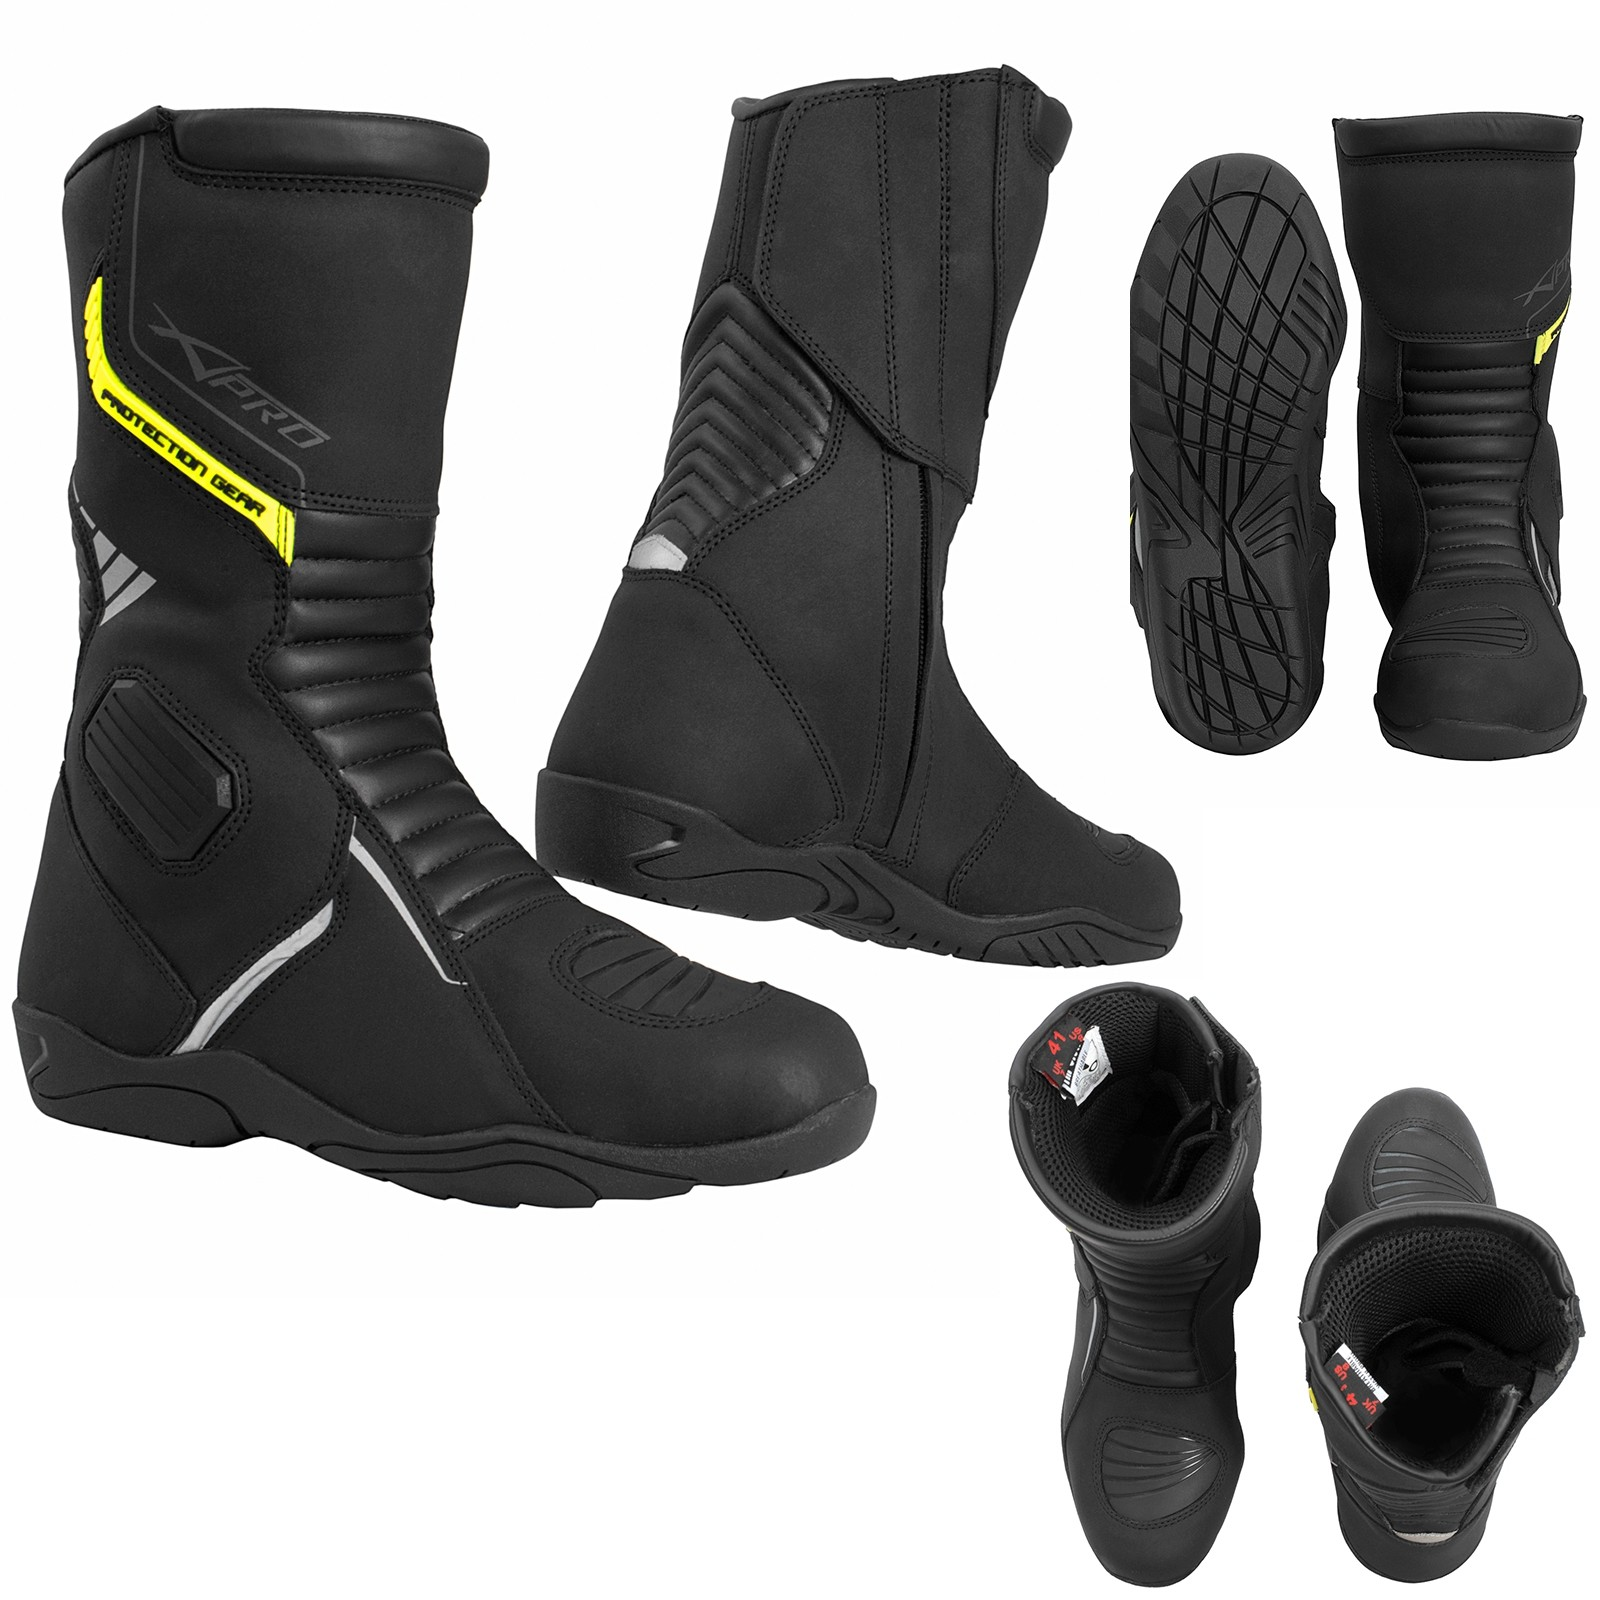 Infinity-Boots-Stivali-Motorcycle-Black-Nero-Sonic-Moto-A-Pro-Set